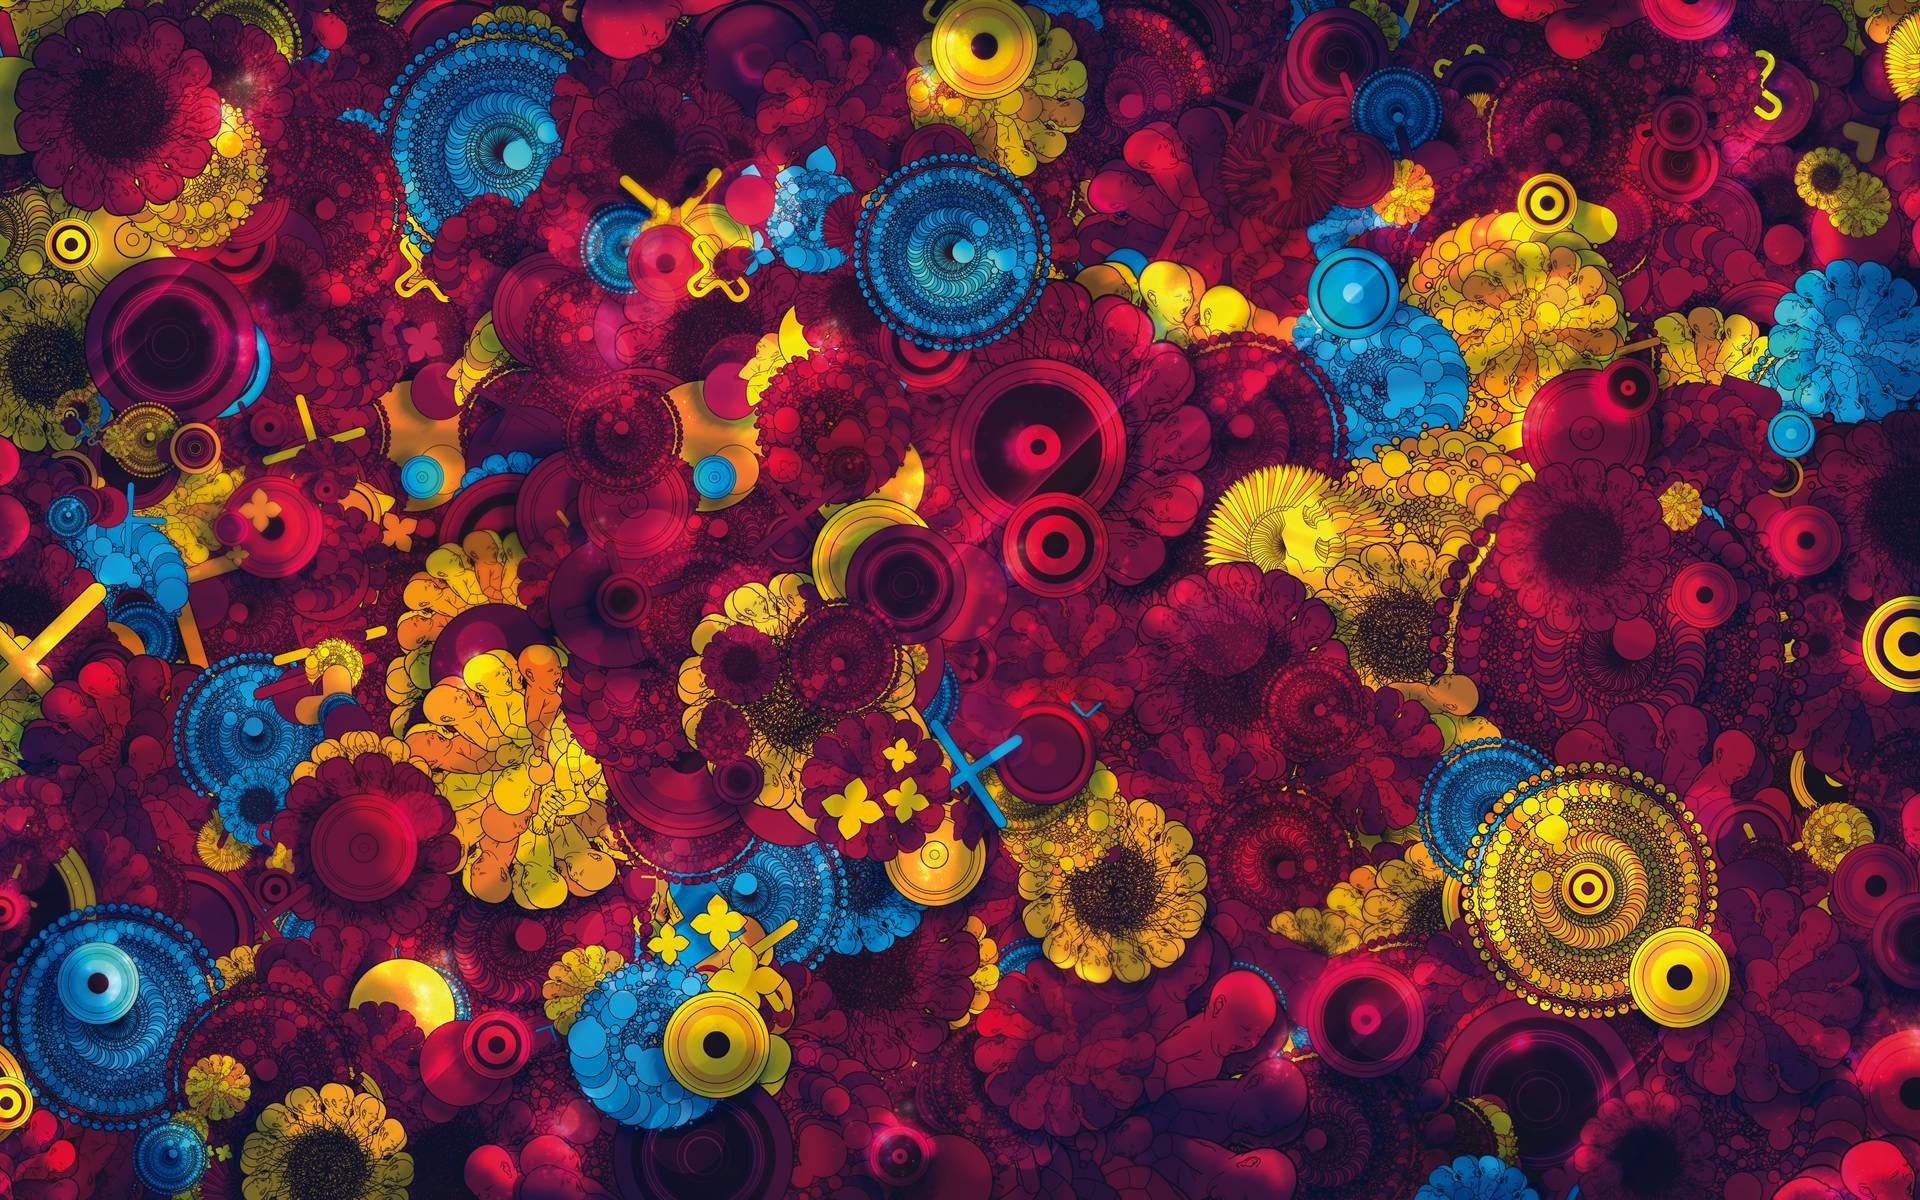 Psychedelic Hd Wallpaper Backgrounds